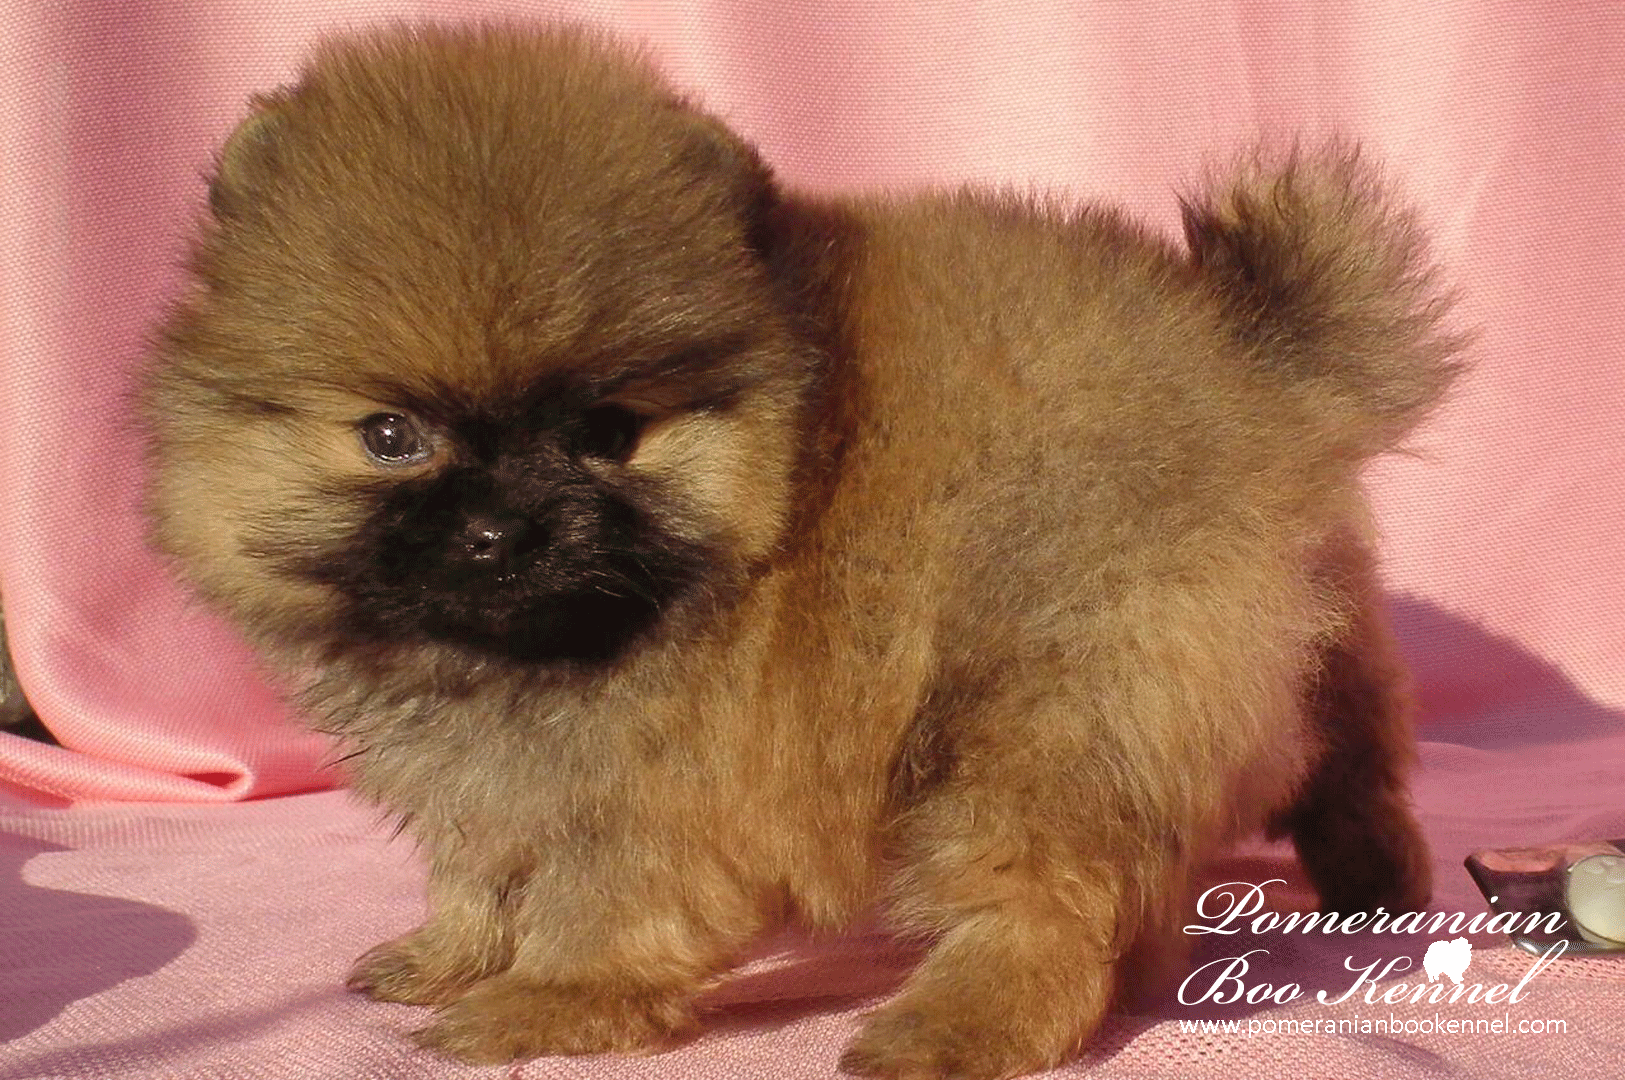 Cute Male Puppies of PomeranianPomeranian puppies for sale